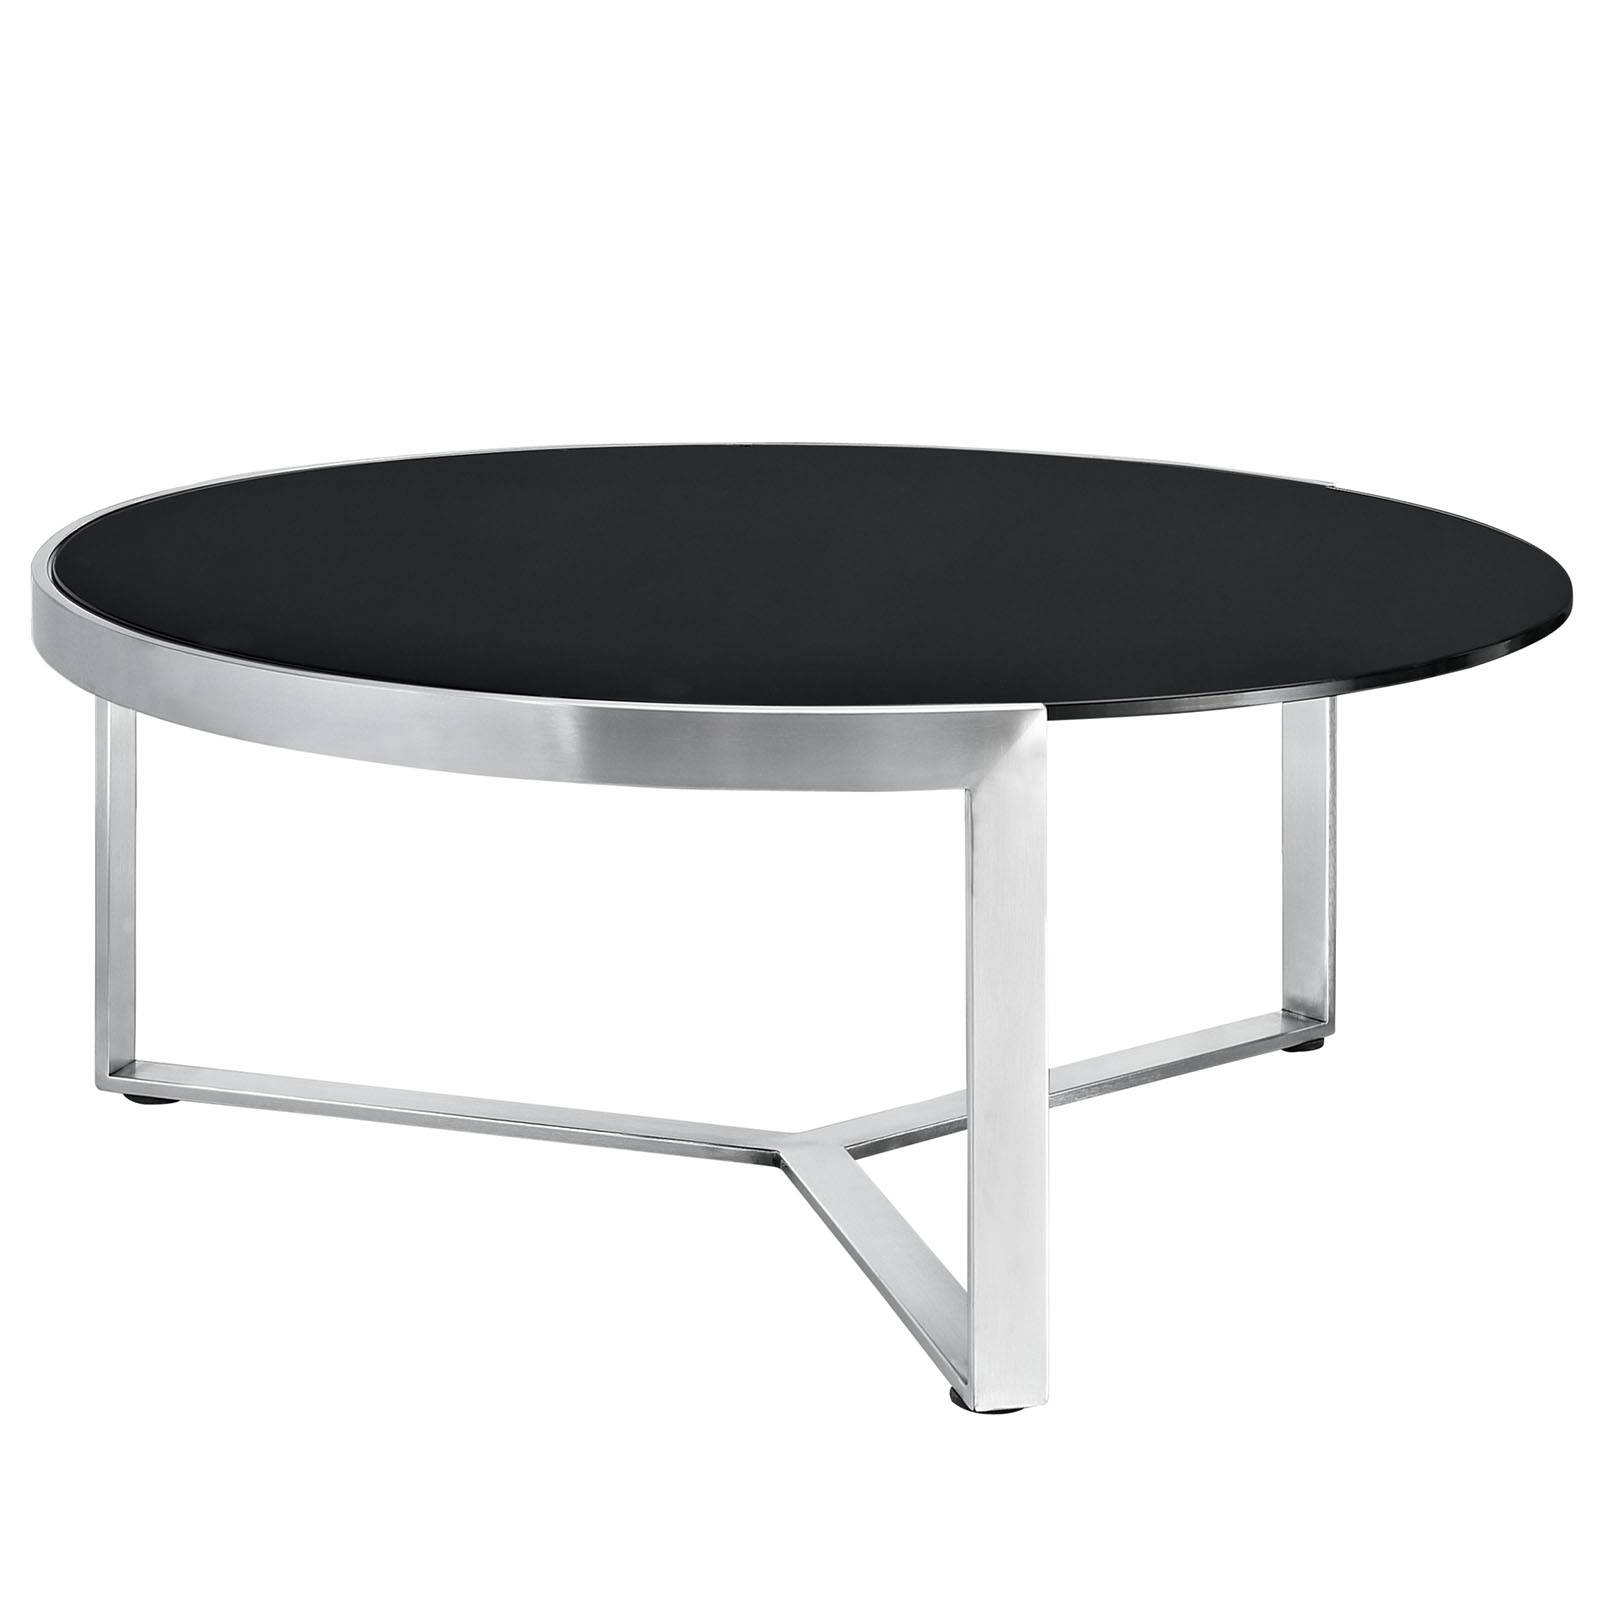 Black Glass Tables view photos of oval black glass coffee tables (showing 10 of 30